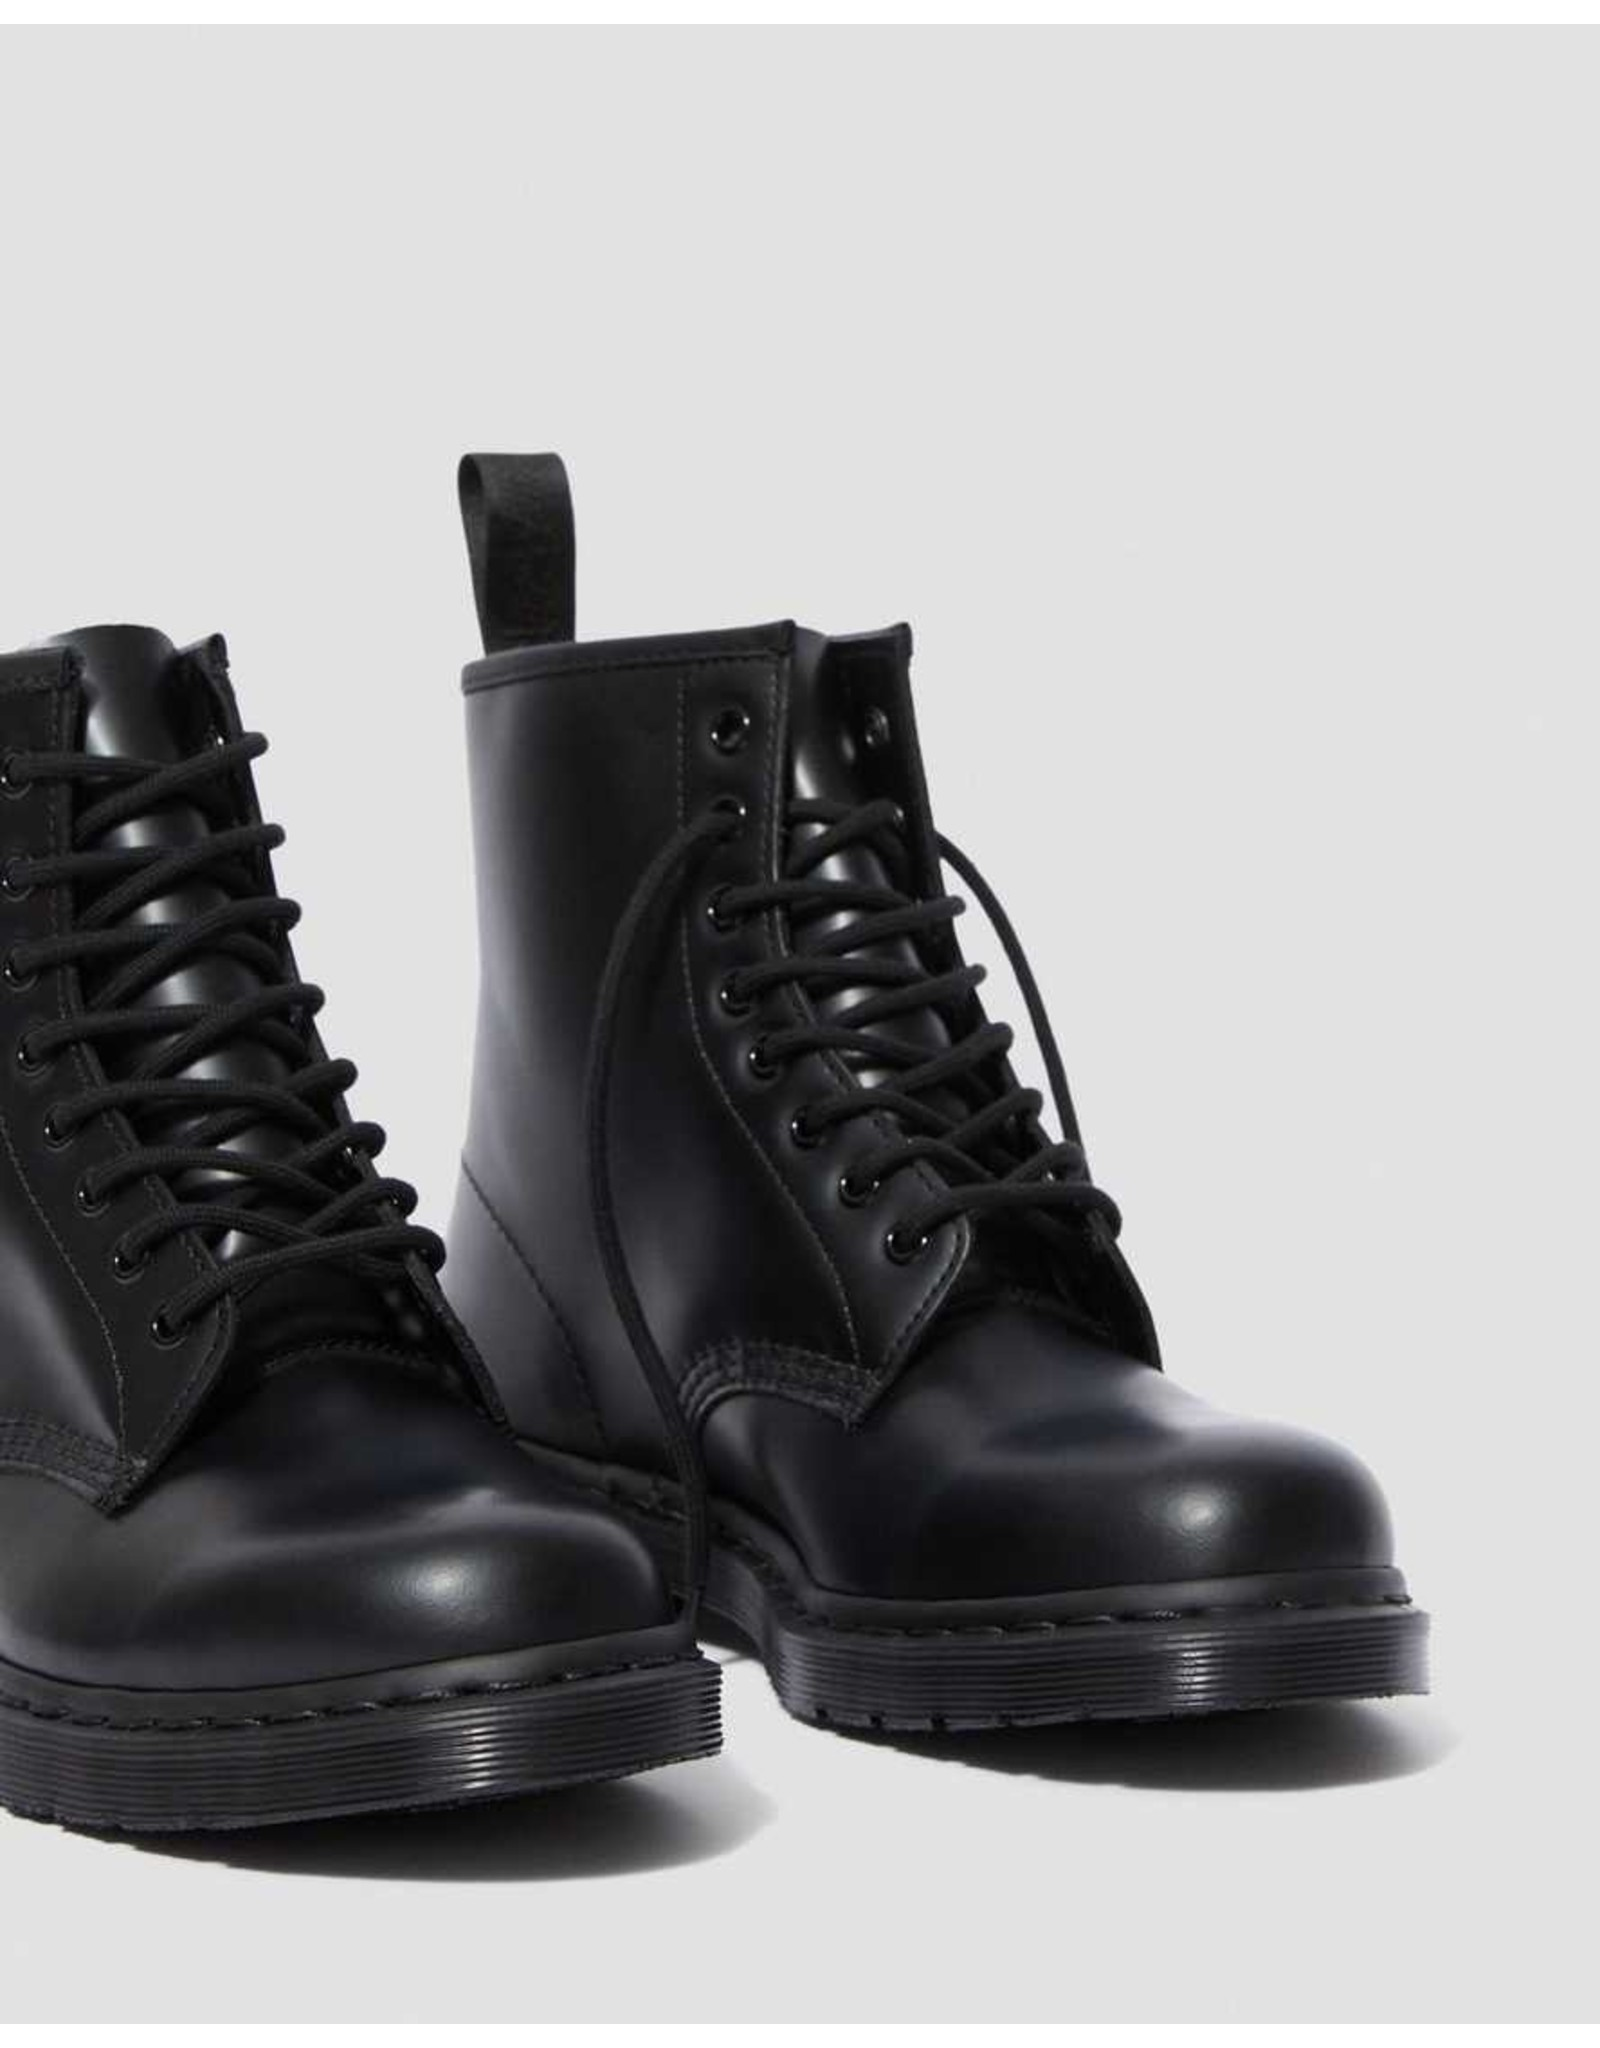 DR. MARTENS DR. MARTENS BLACK MONO SMOOTH LEATHER LACE UP BOOTS